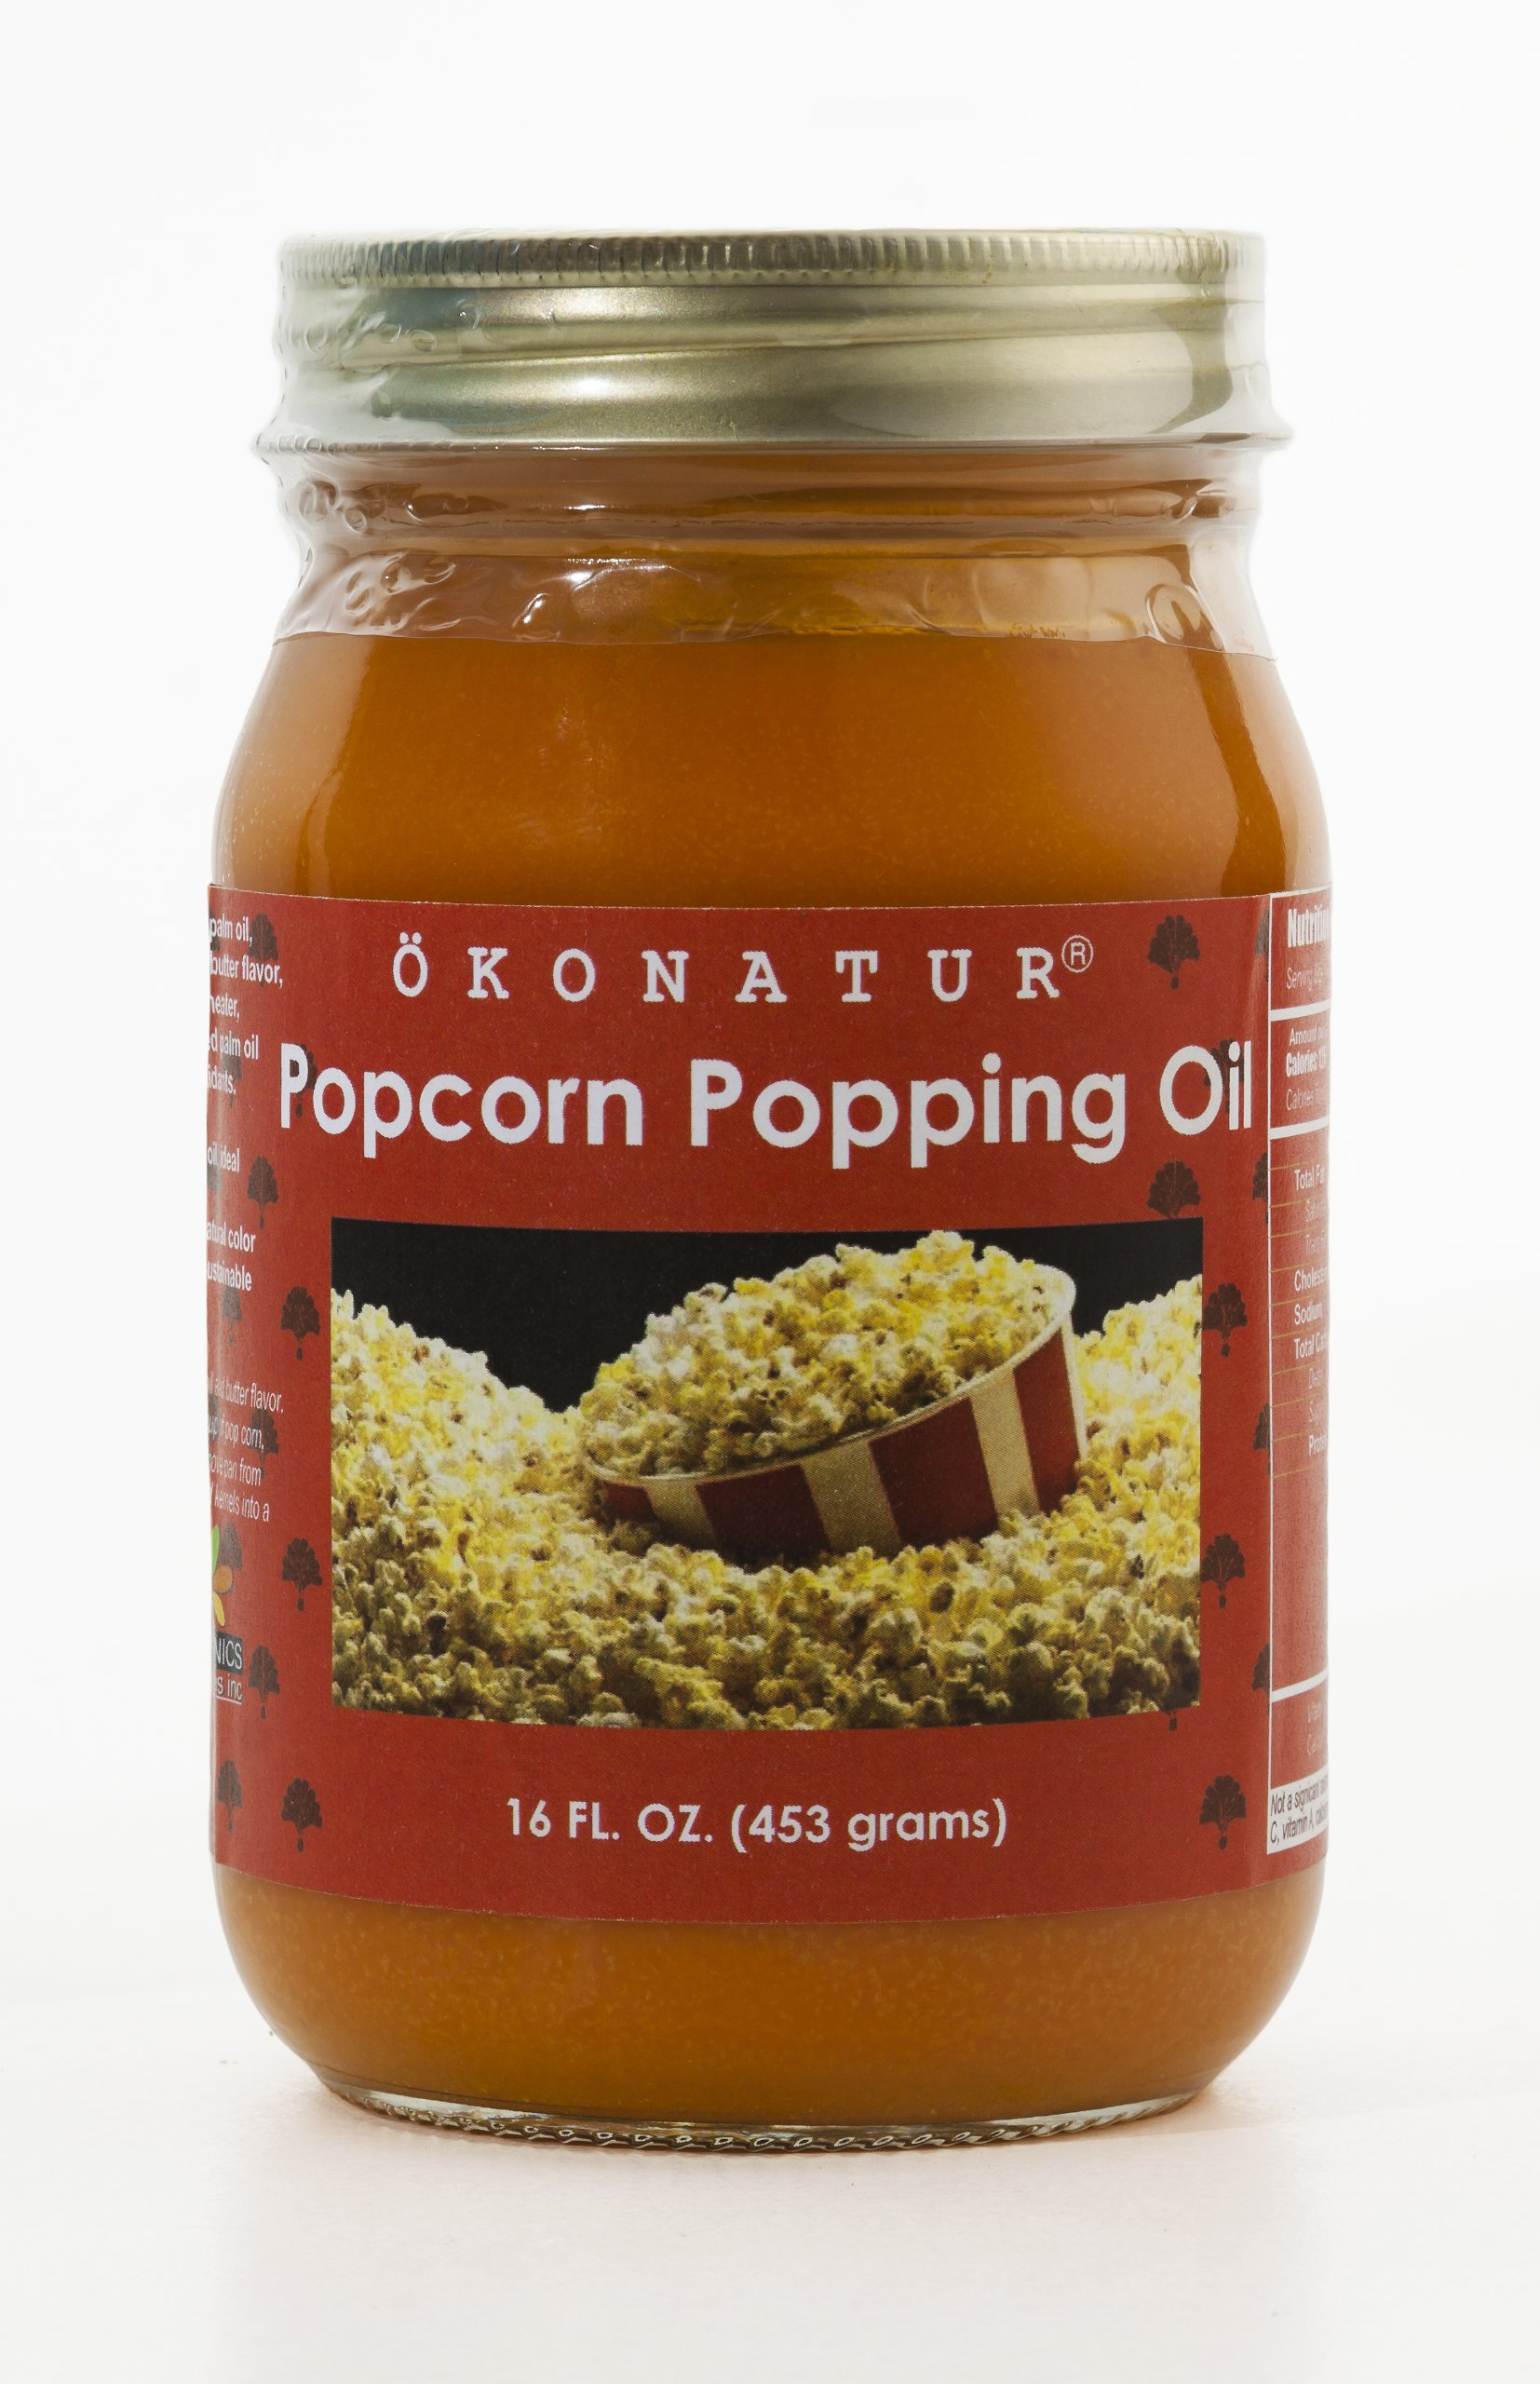 OKONATUR Popcorn Popping Oil - 16 oz